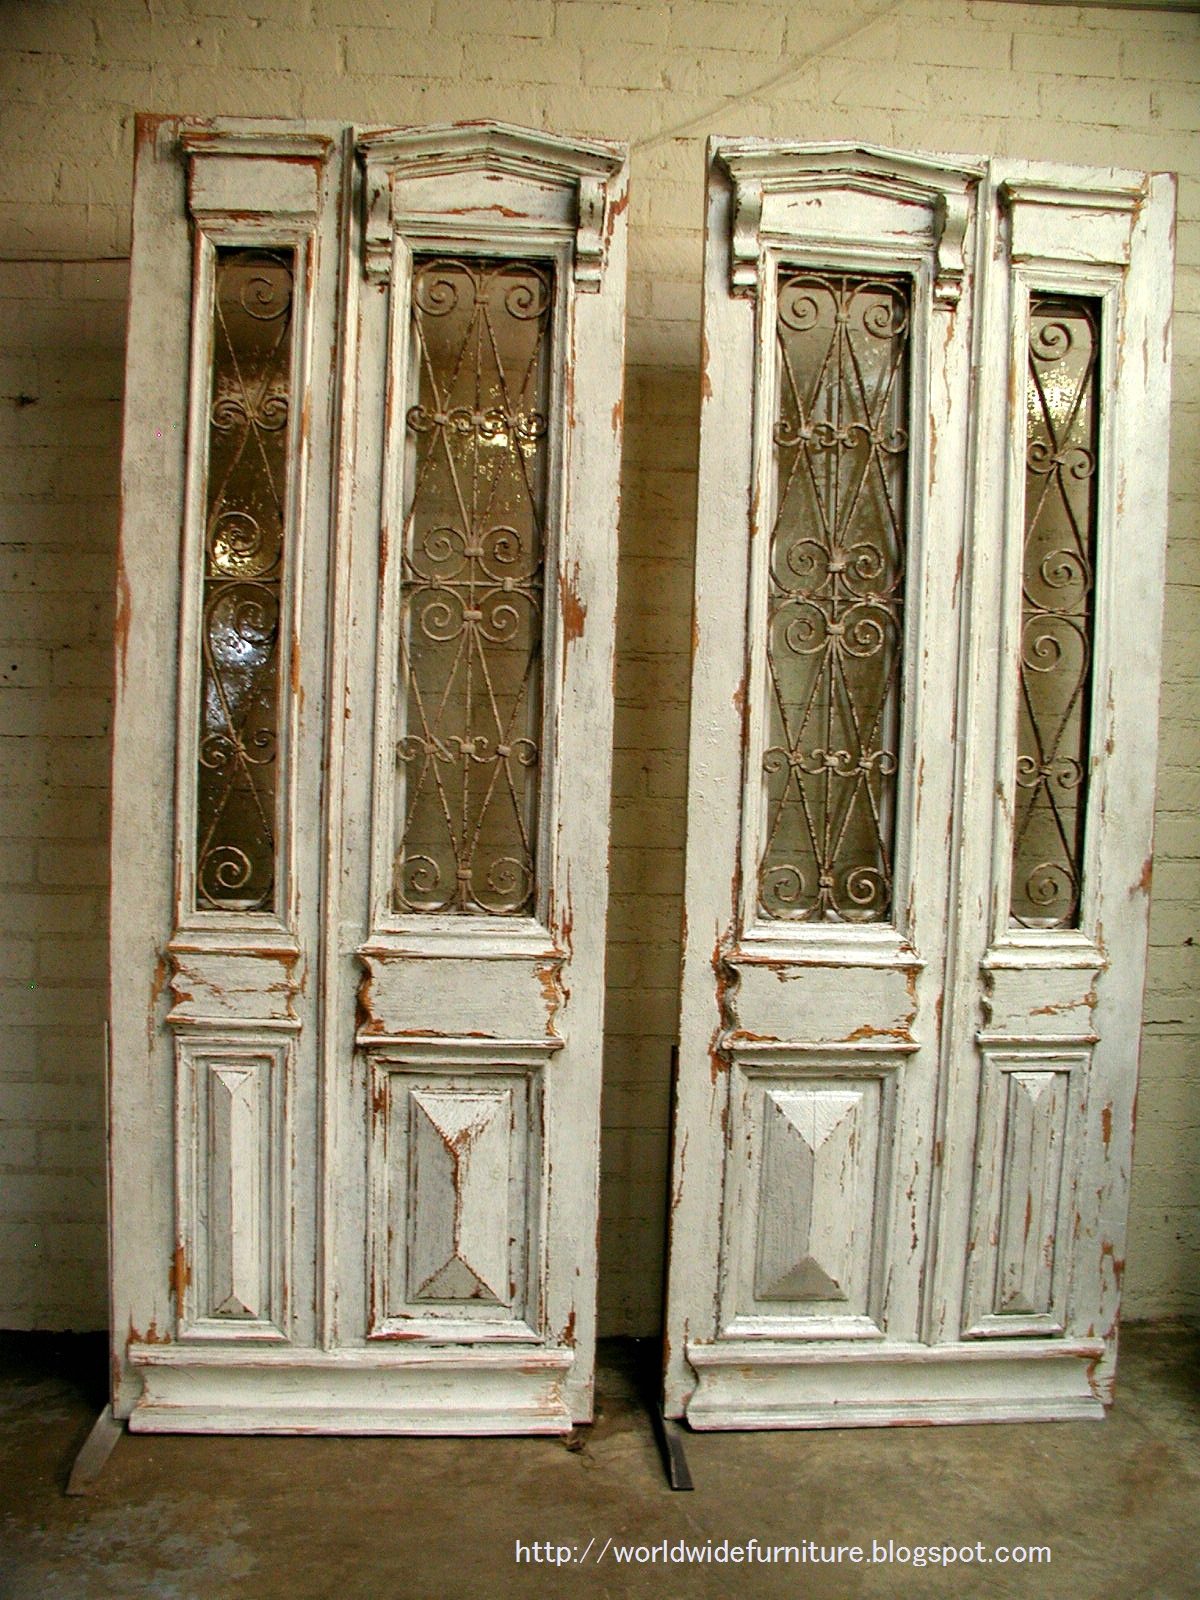 Wooden doors vintage wooden doors for sale for Interior double french doors for sale